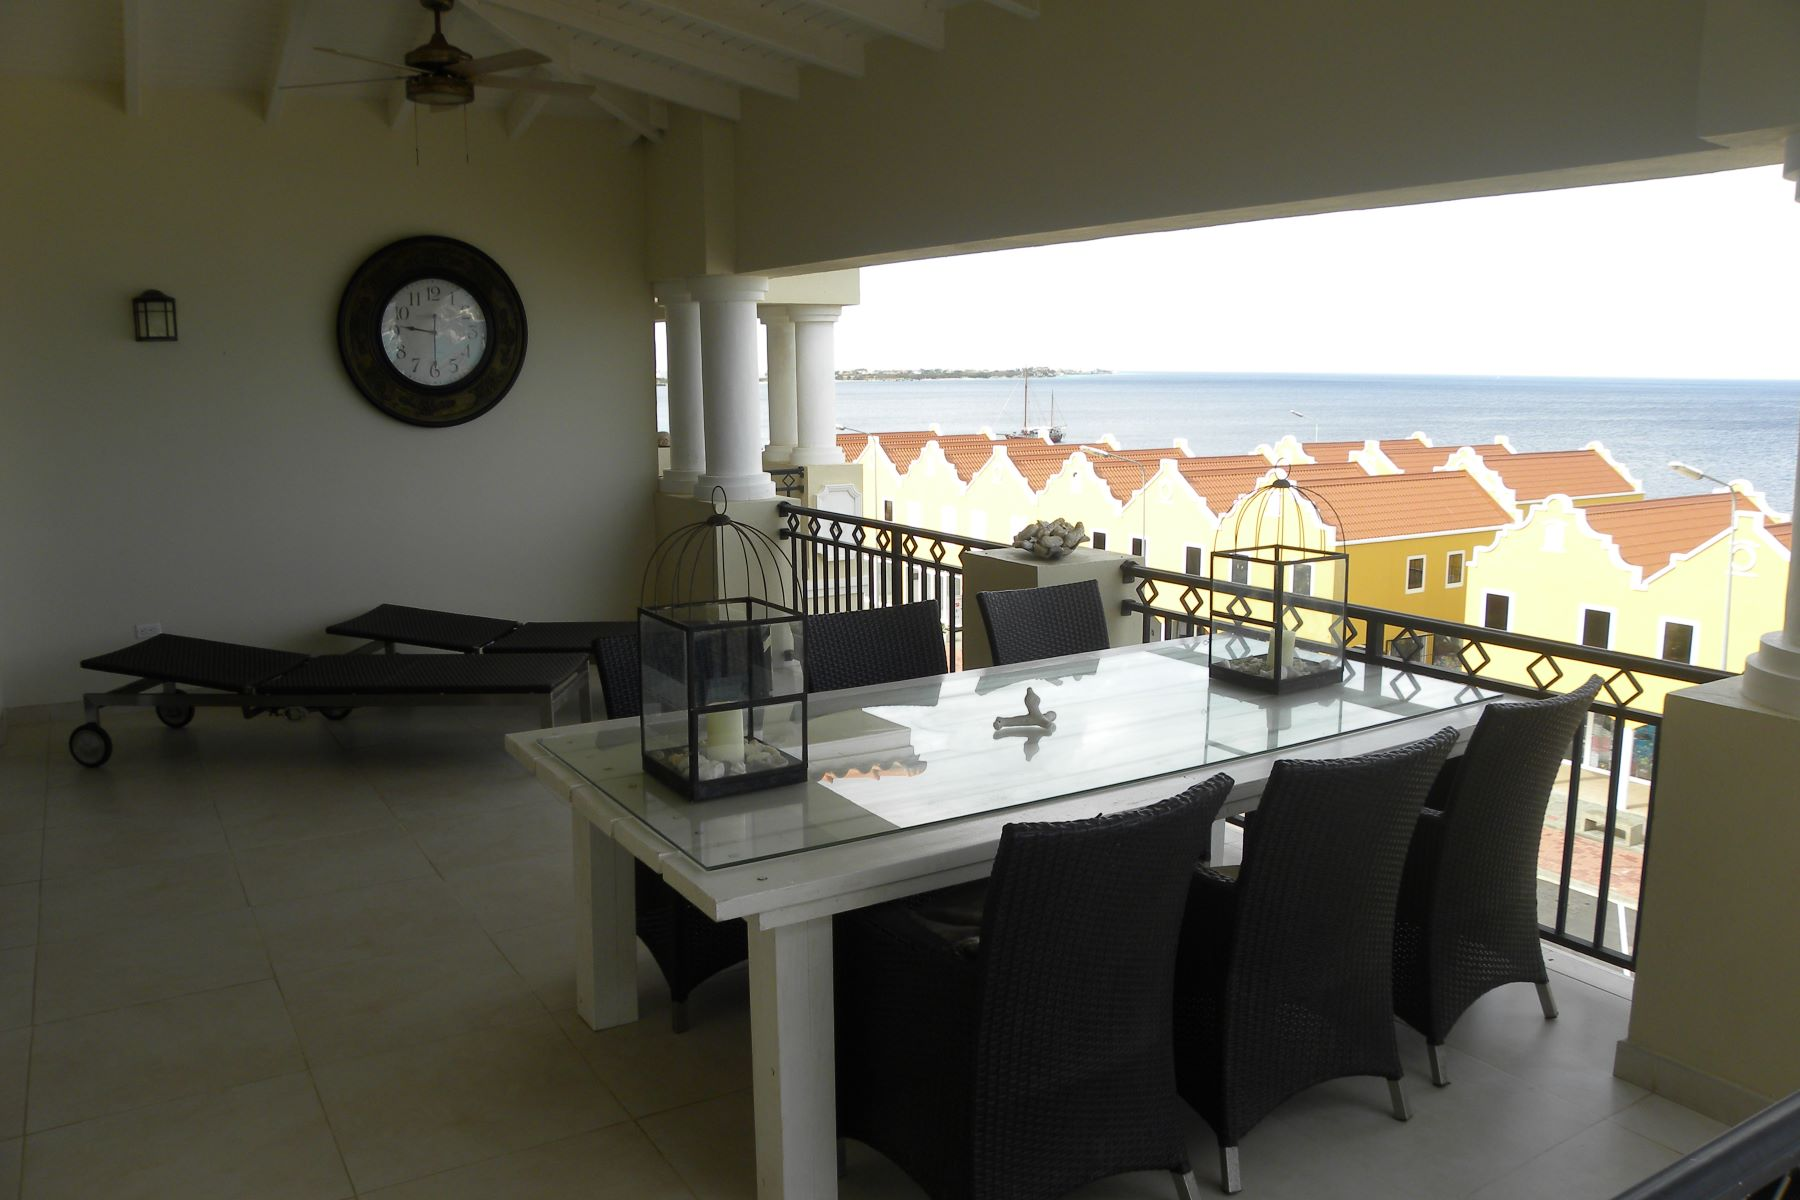 Additional photo for property listing at Hausman Follies 13 Kralendijk, Bonaire Bonaire